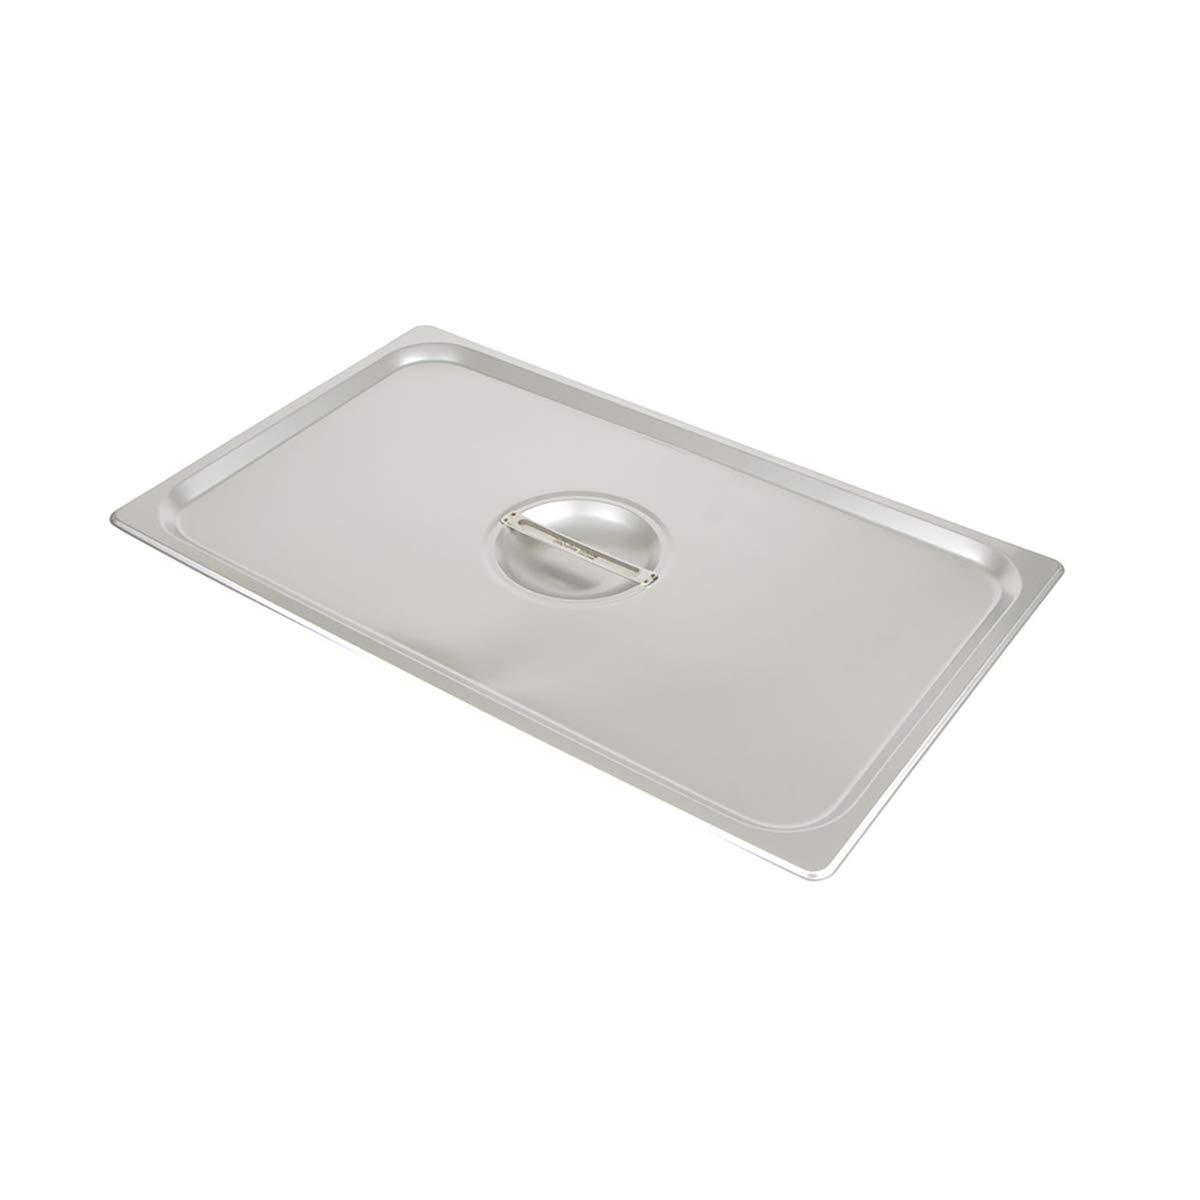 Update International STP-100CHC S/Steam Table Pan Cover, Full Size Notched, 18-8 Stainless Steel AISI-304